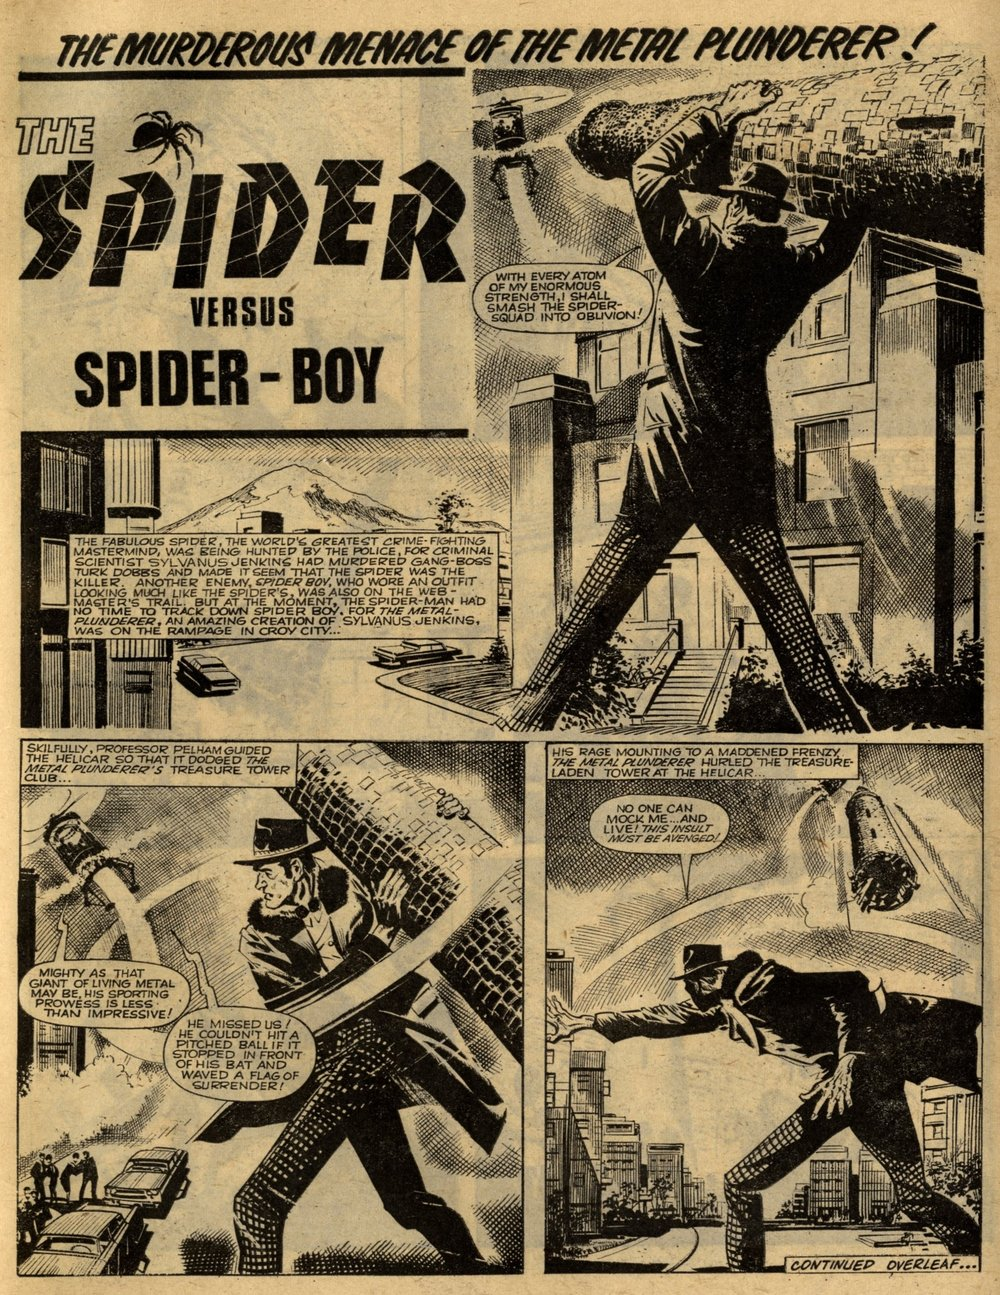 The Spider: Jerry Siegel (writer), Reg Bunn (artist)